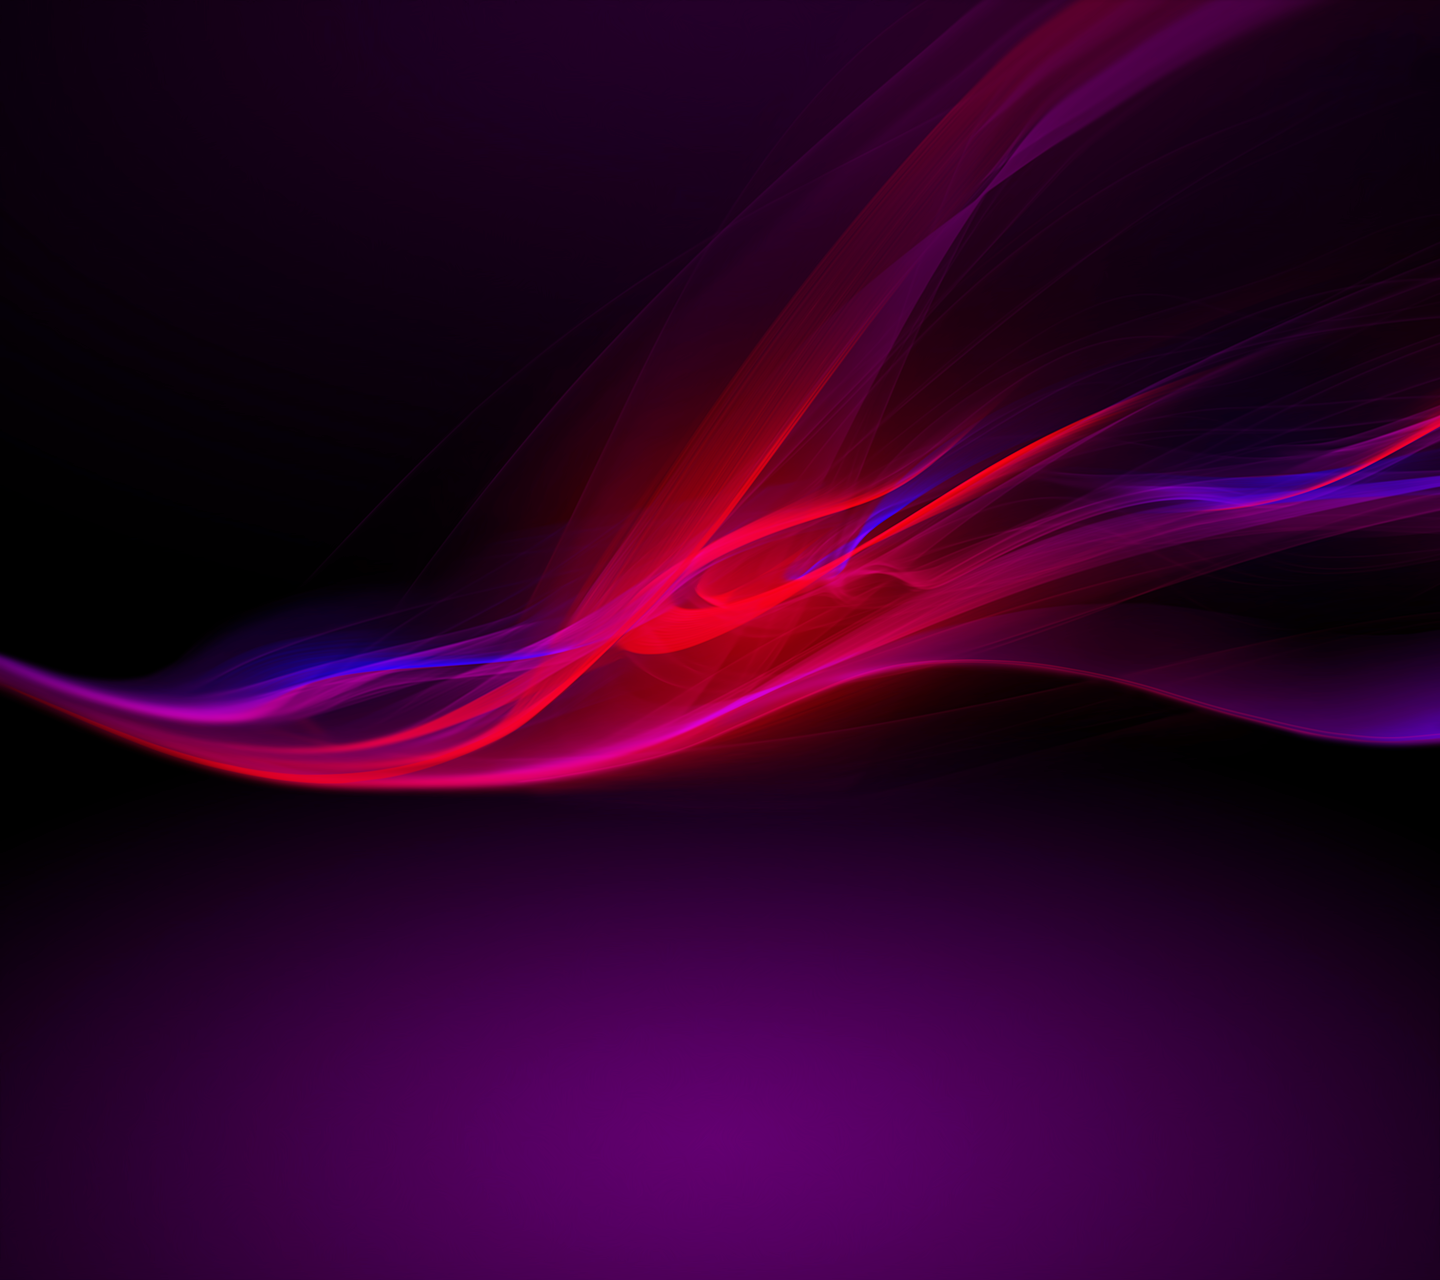 Sony Xperia Wallpaper 23307 1440x1280 px ~ HDWallSource.com